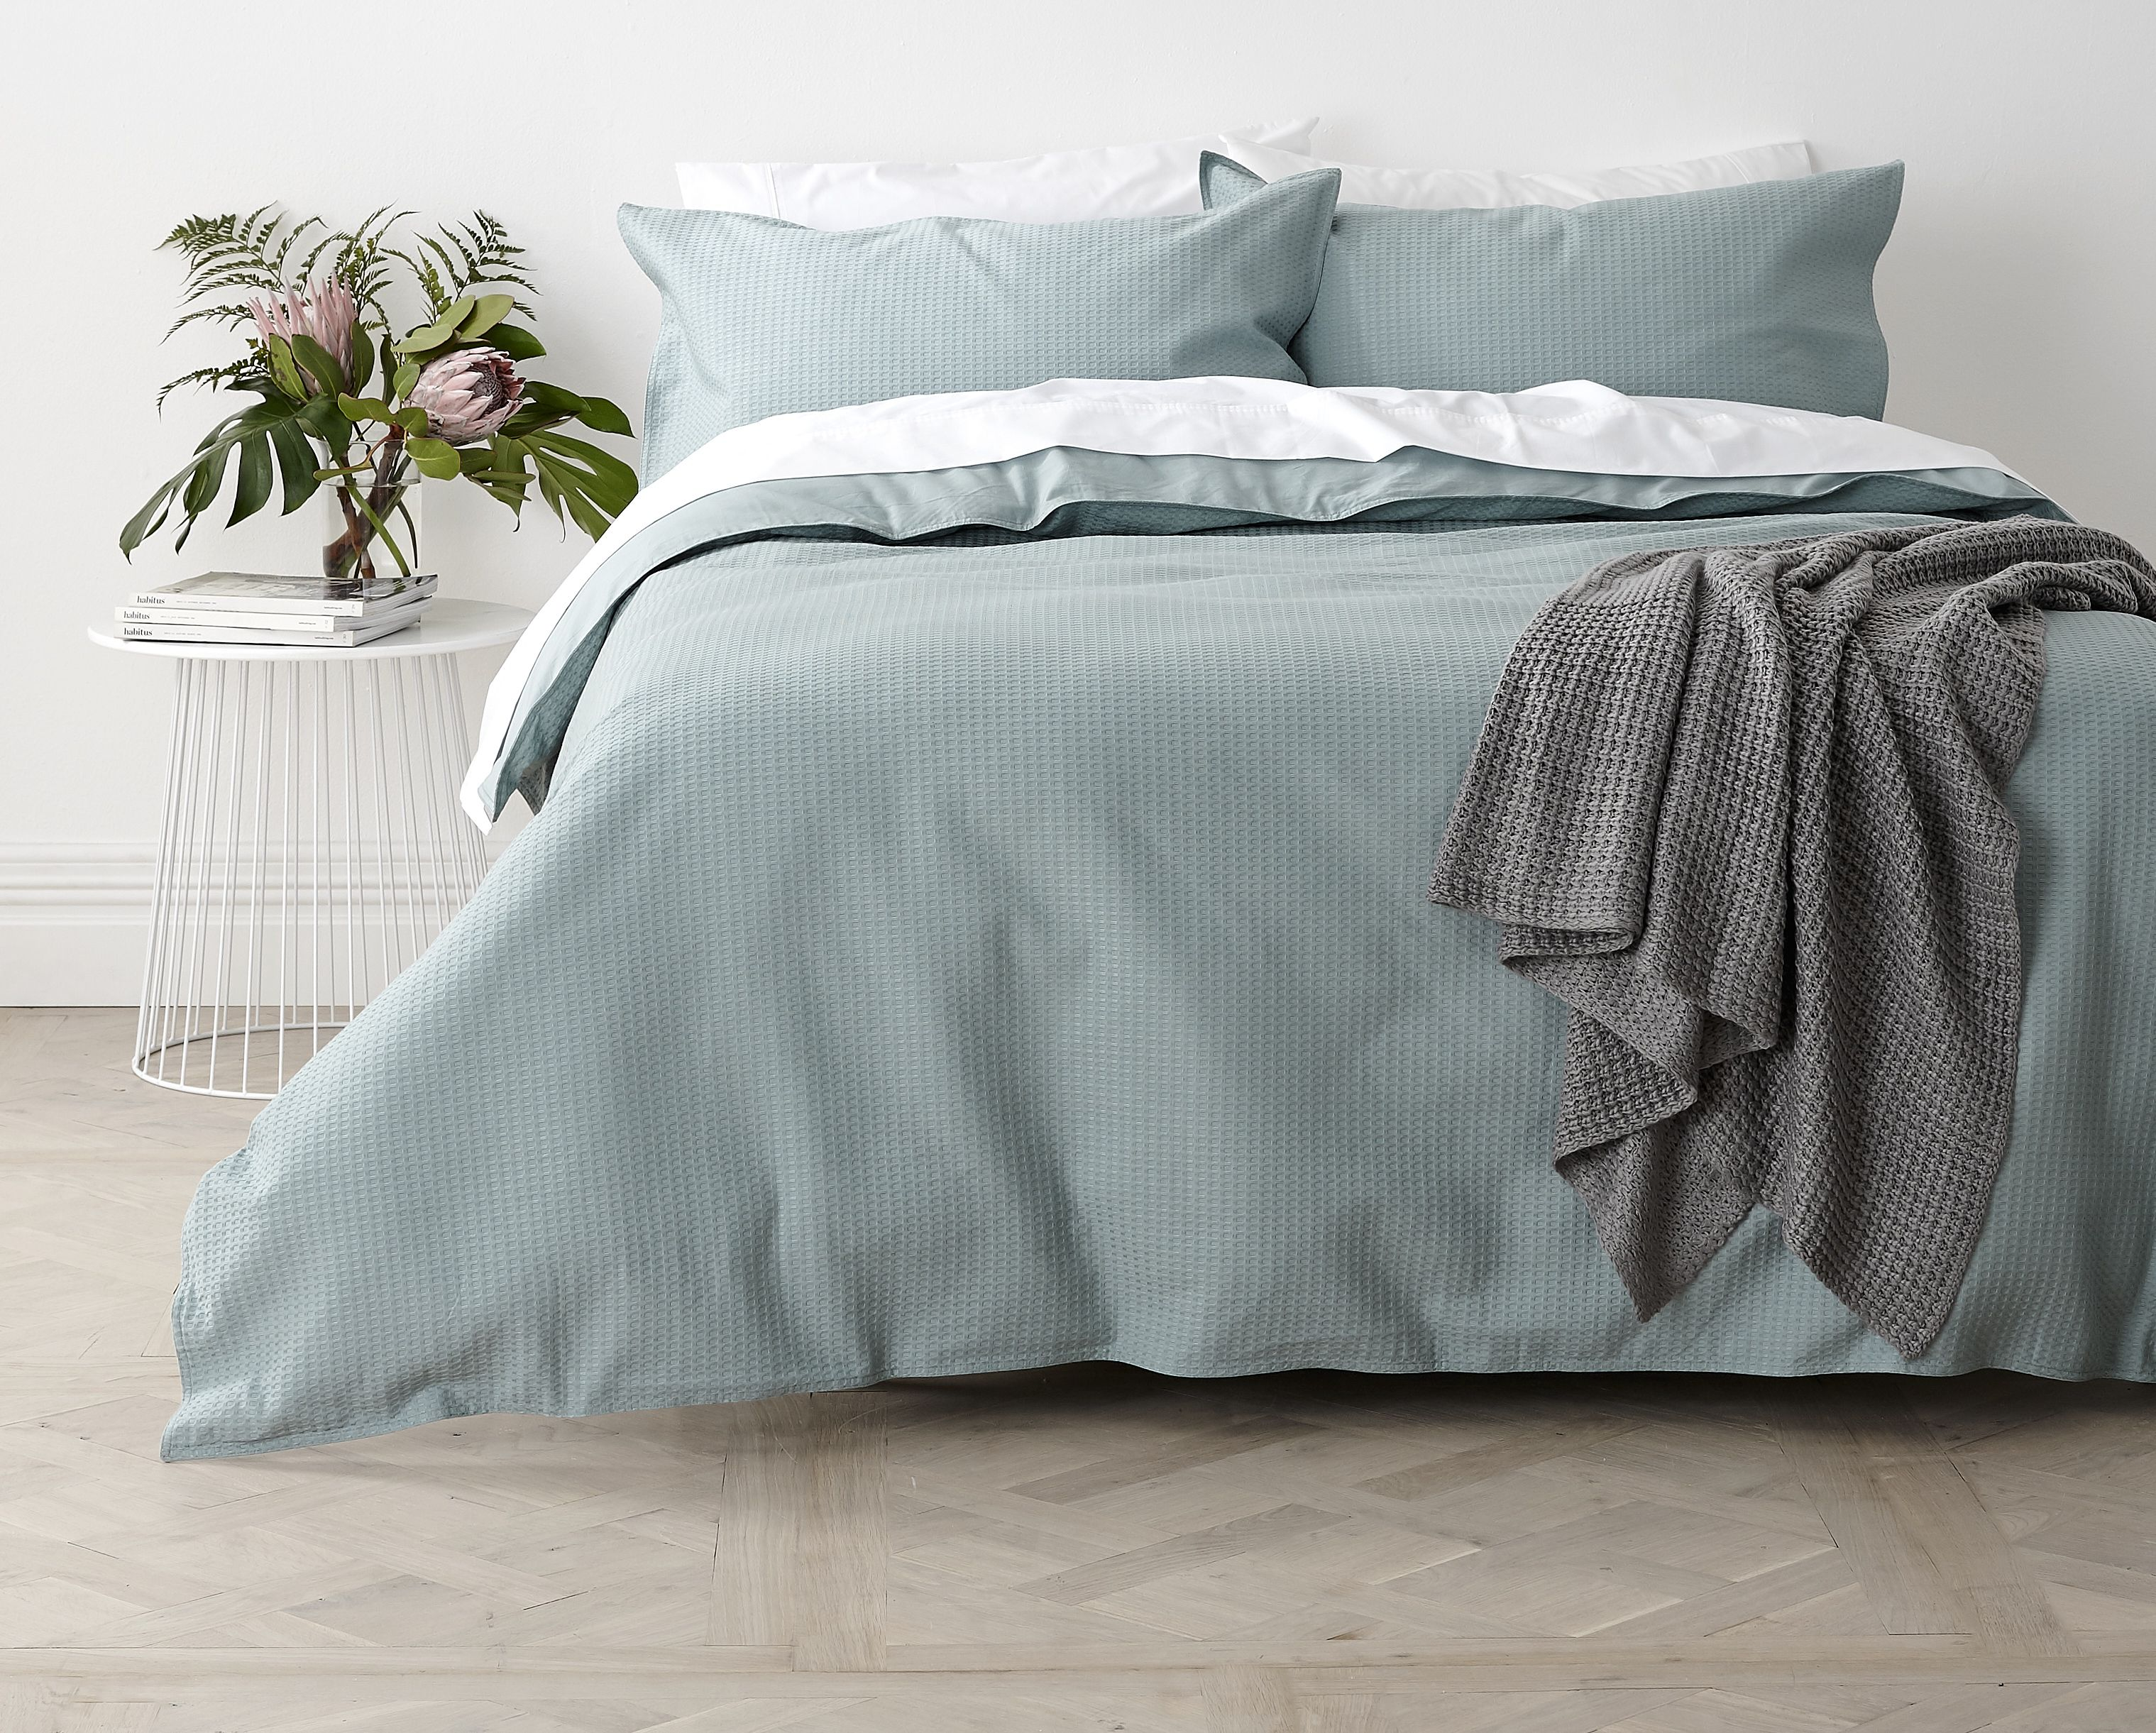 In2Linen Waffle Weave Pure Cotton Quilt Cover Set I Green|Fog  From $49.95